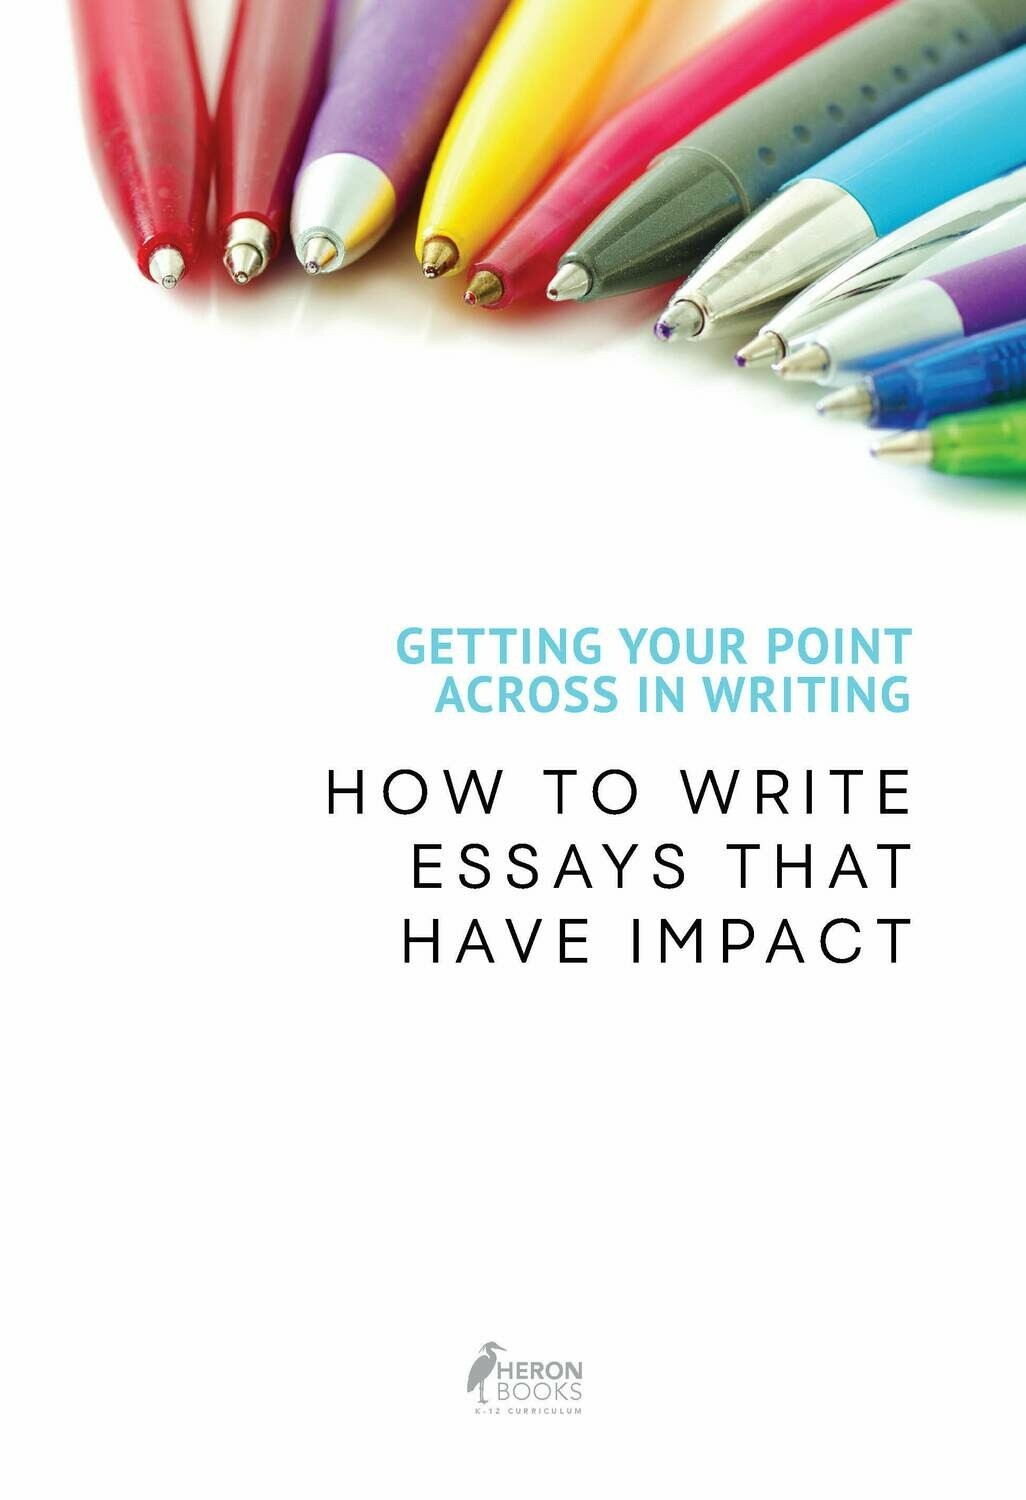 Getting Your Point Across In Writing – How to Write Essays that Have Impact - Free Download!